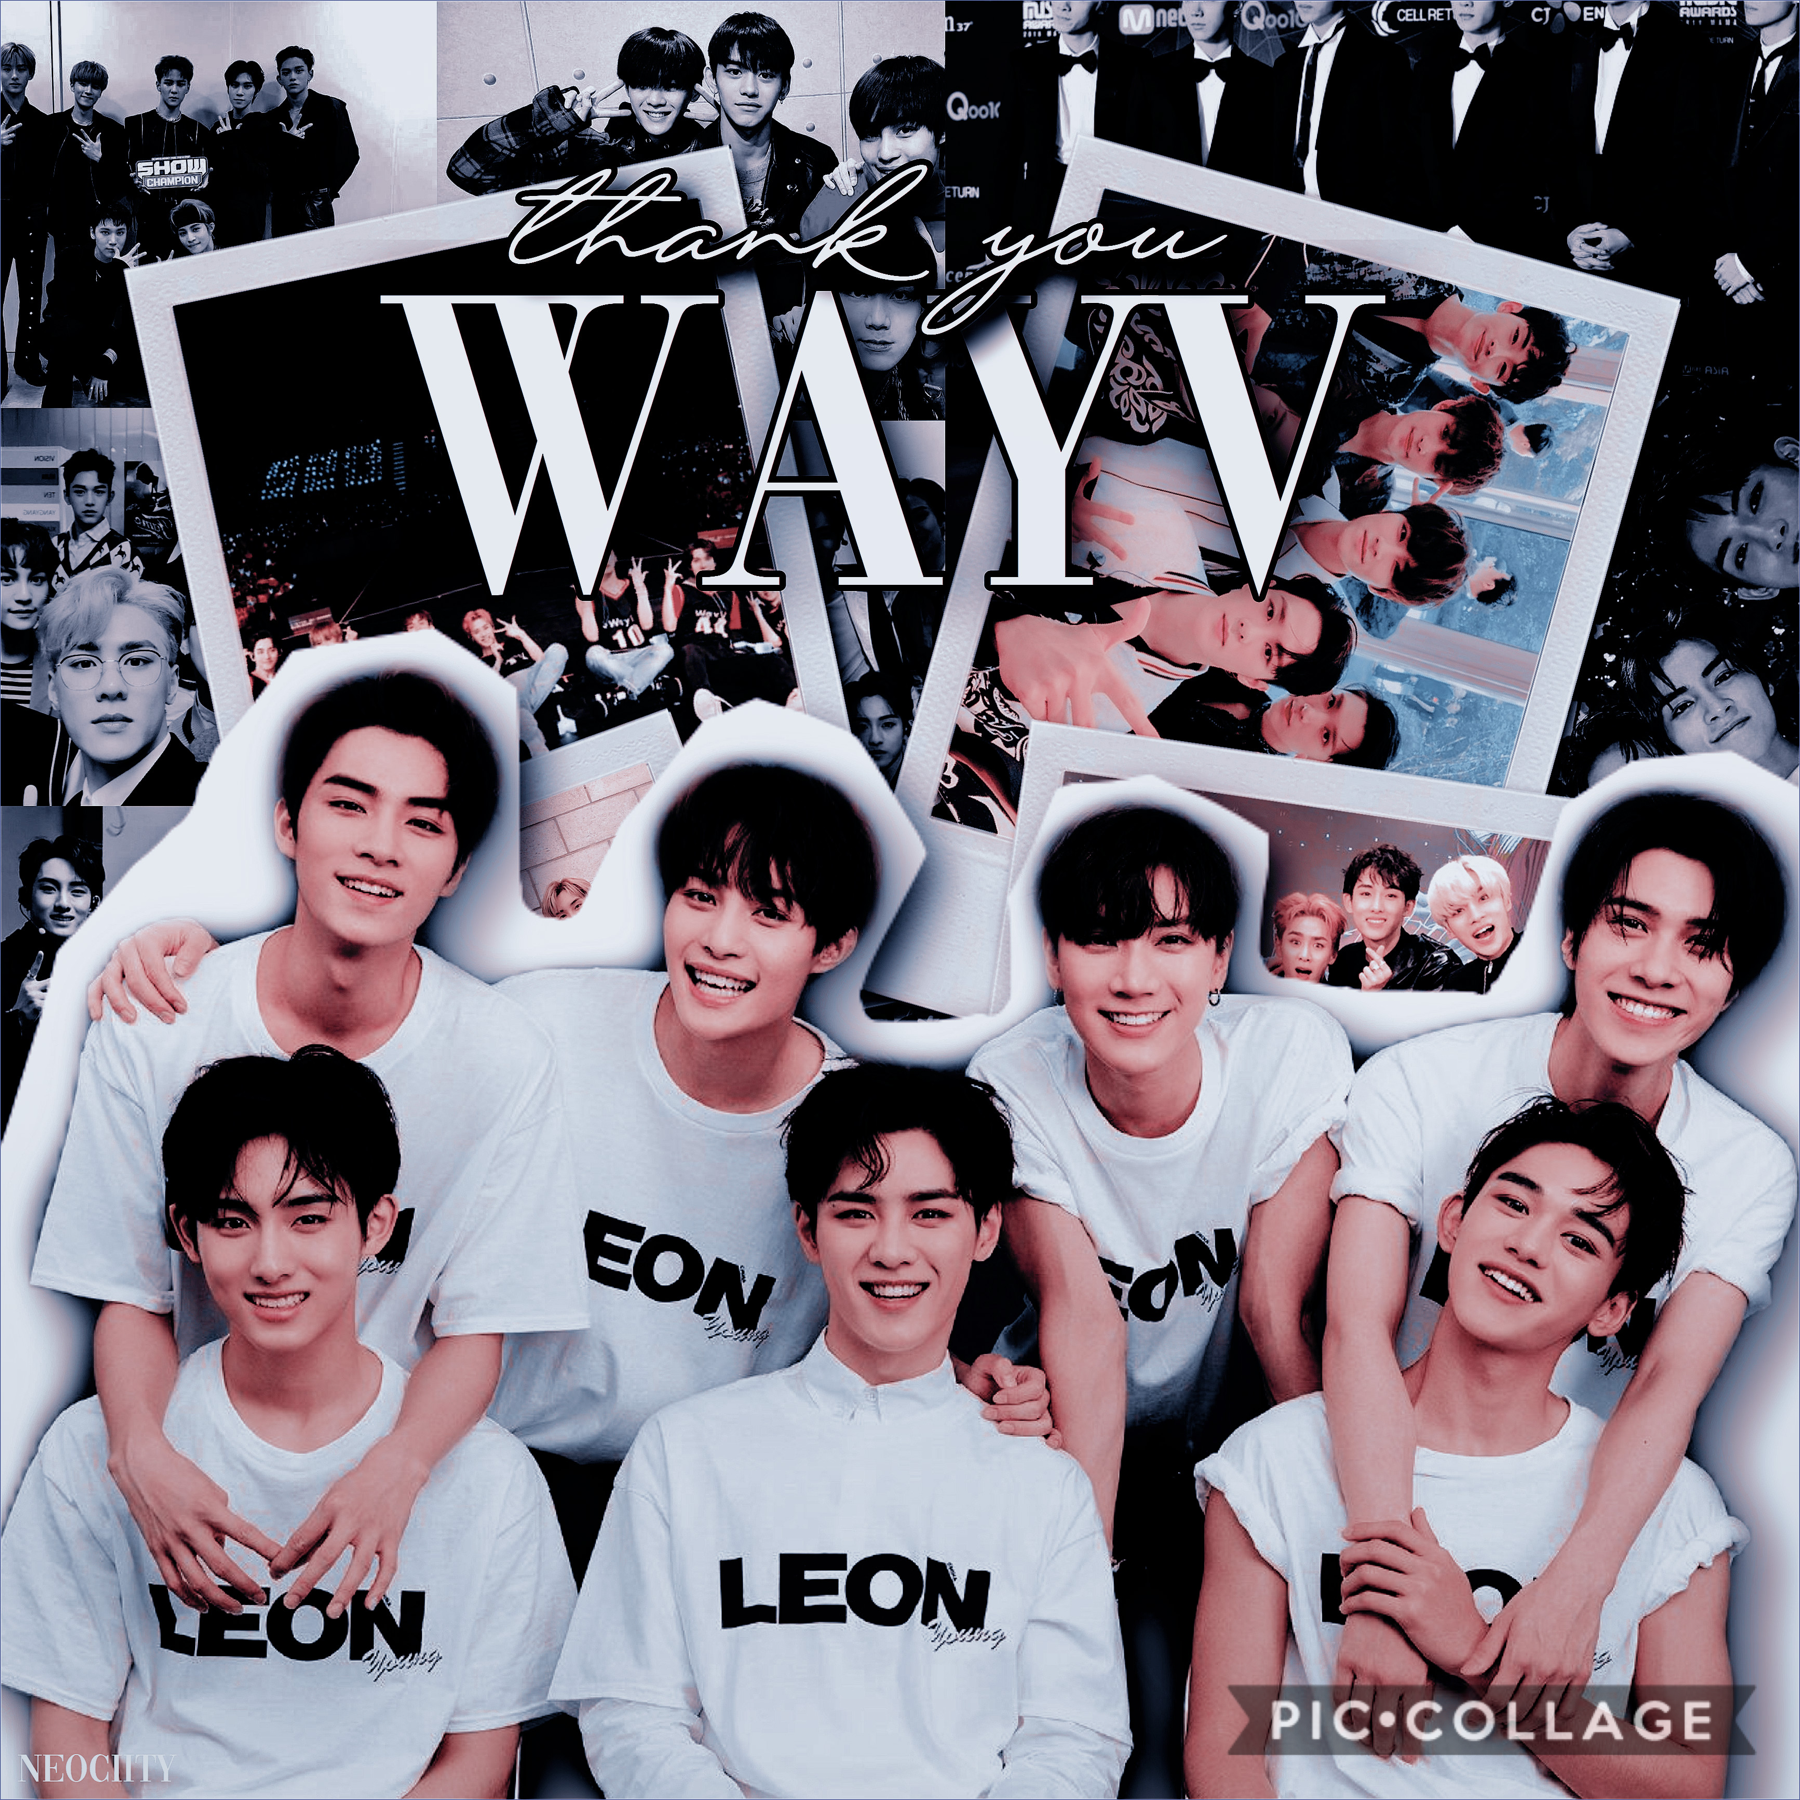 happy one year wayv!! sorry im a little late haha  follow me on Instagram @neociity and subscribe to my yt too :)